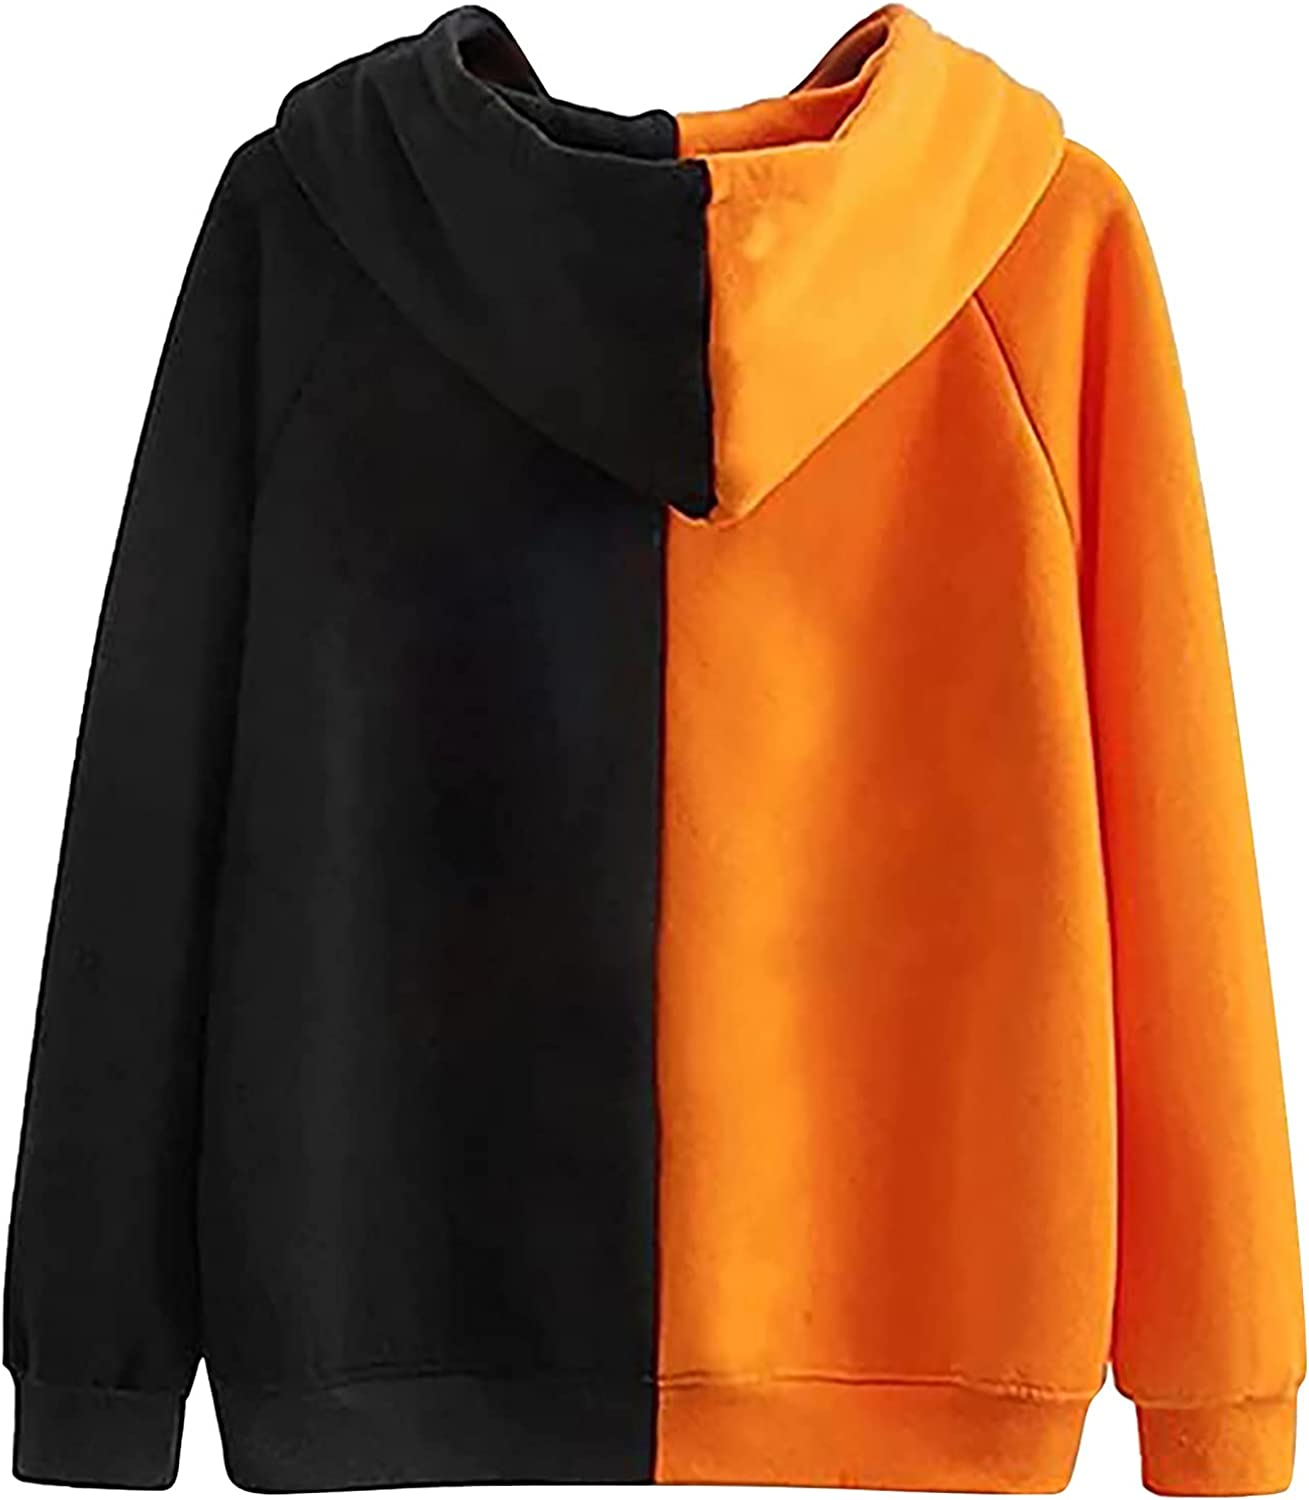 Women Halloween Stitching Color Skull finger Bra Car Skeleton Print Long Sleeve Hoodies creative pullover With Pockets